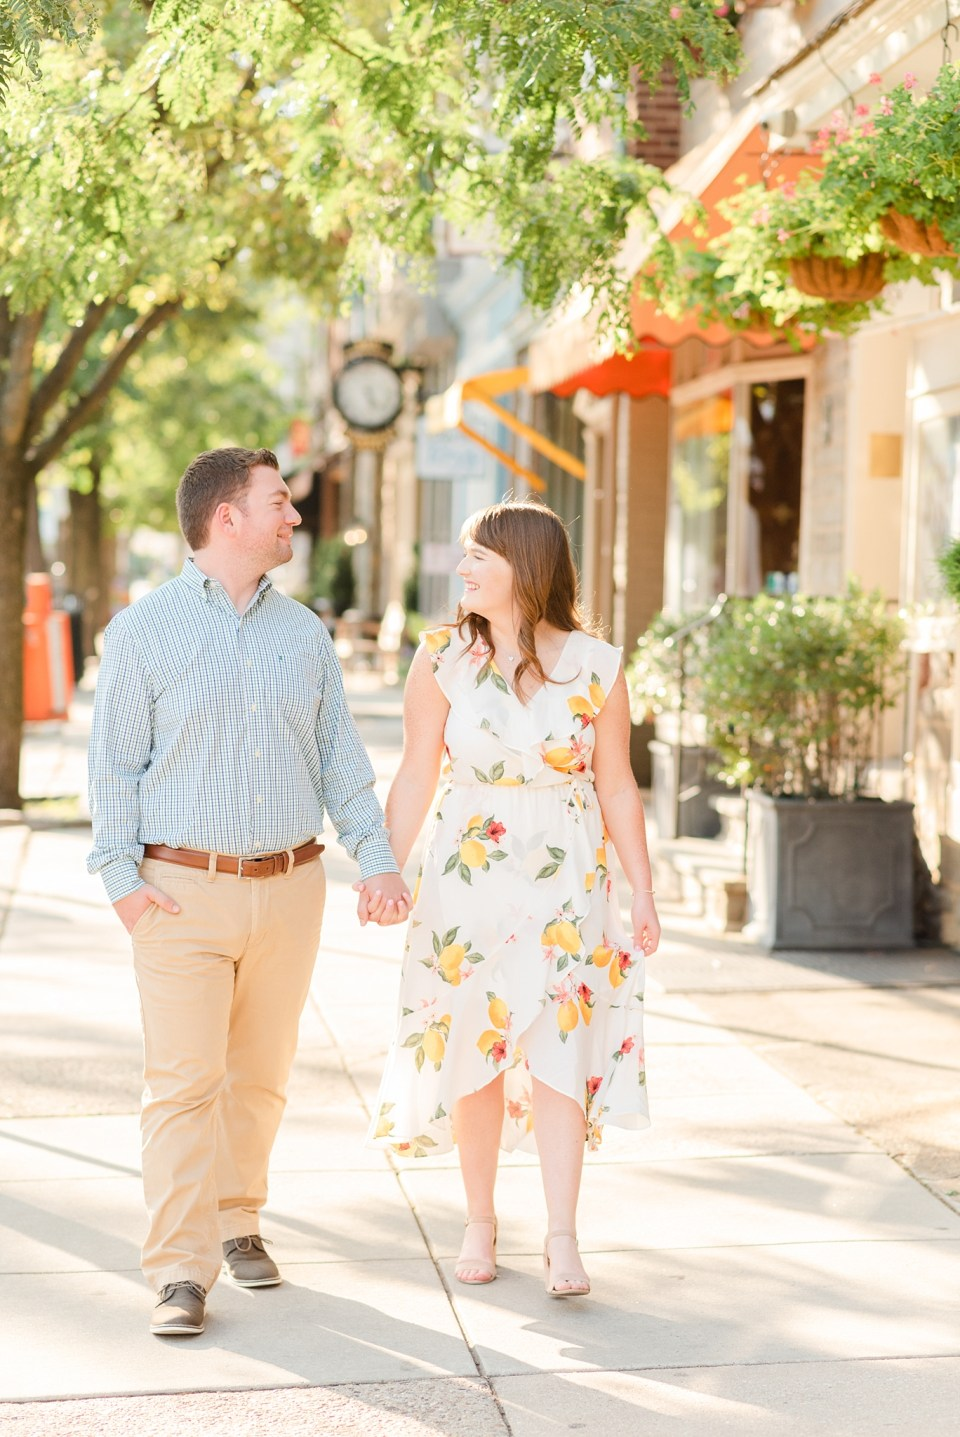 Chestnut Hill engagement photos by Renee Nicolo Photography